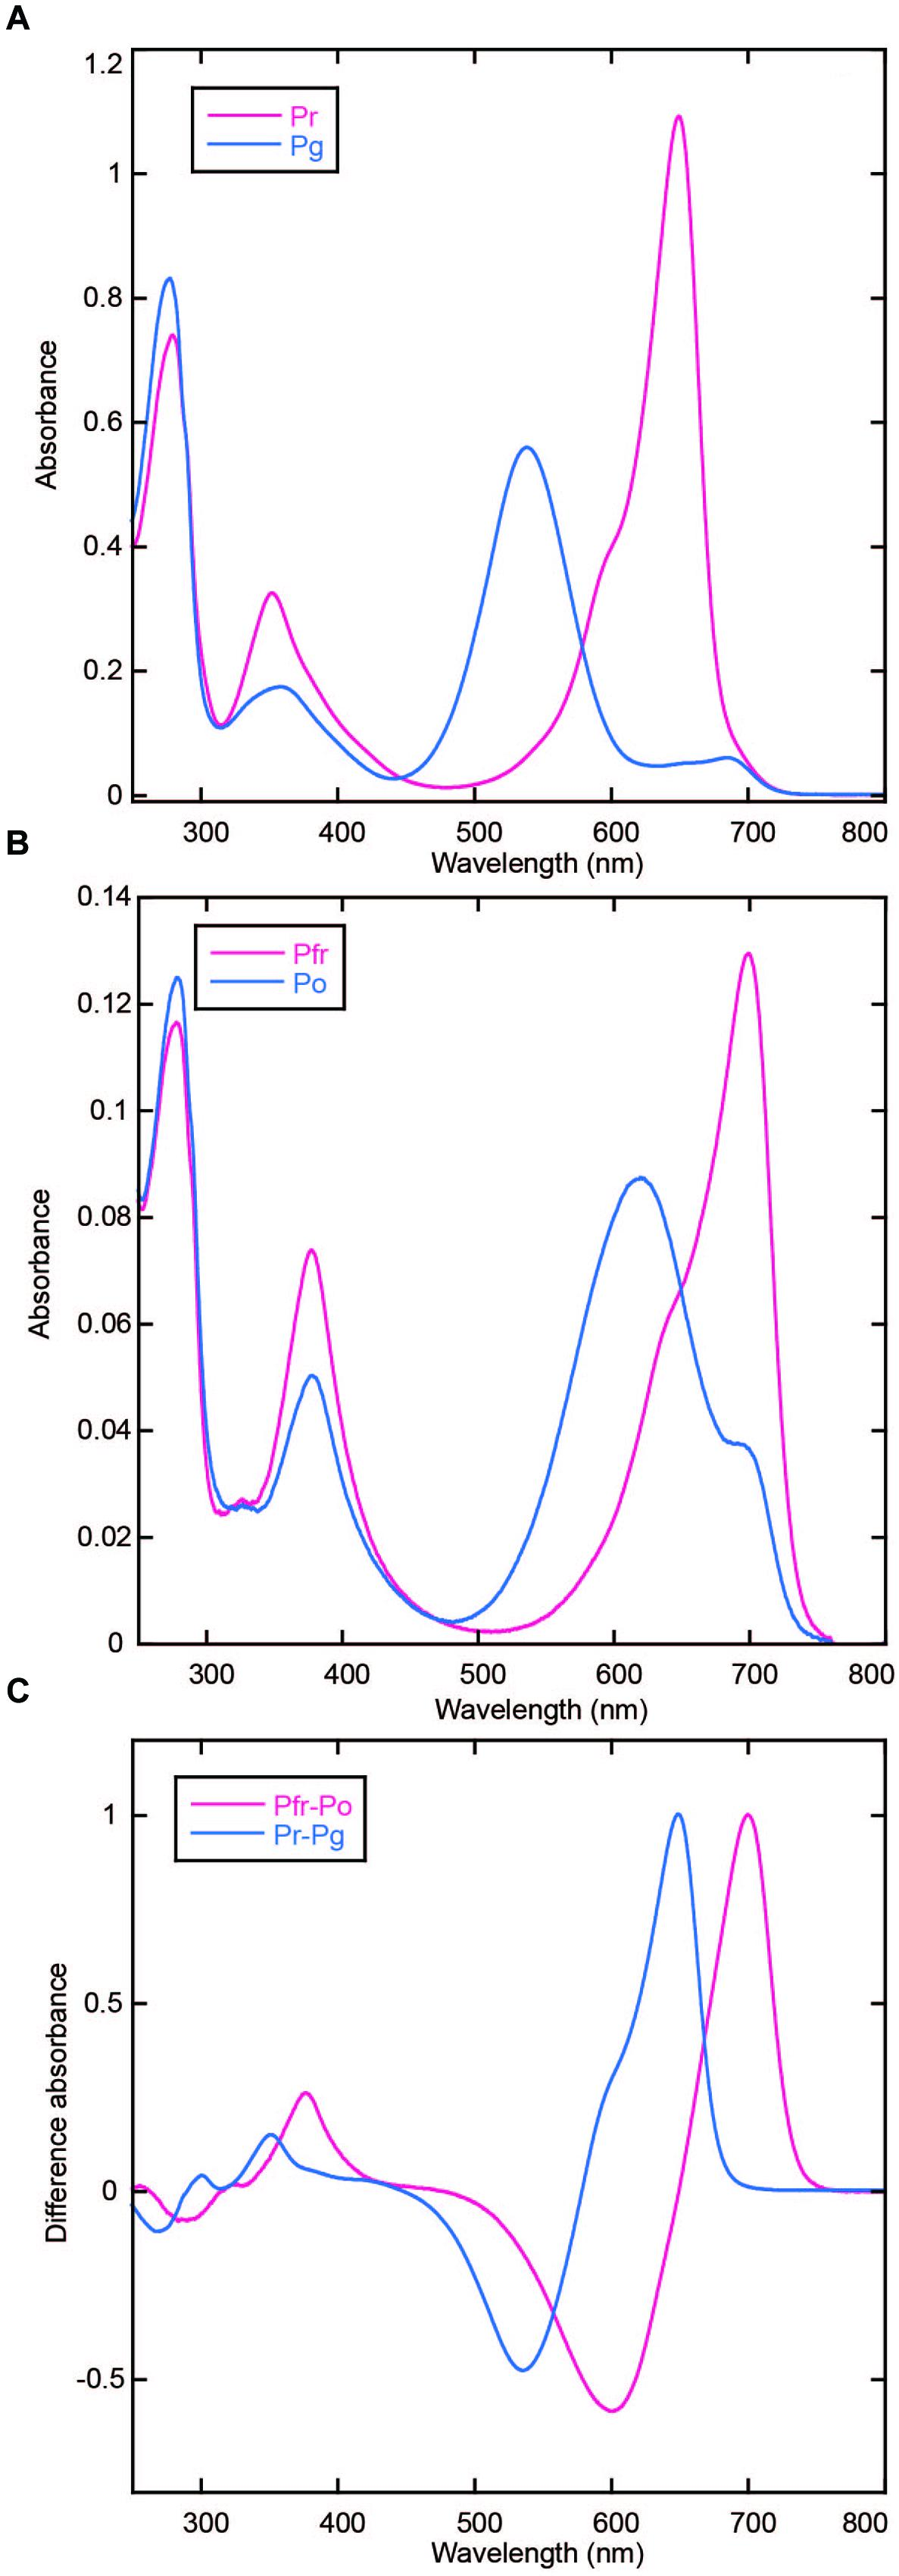 Frontiers | Photoconversion and Fluorescence Properties of a